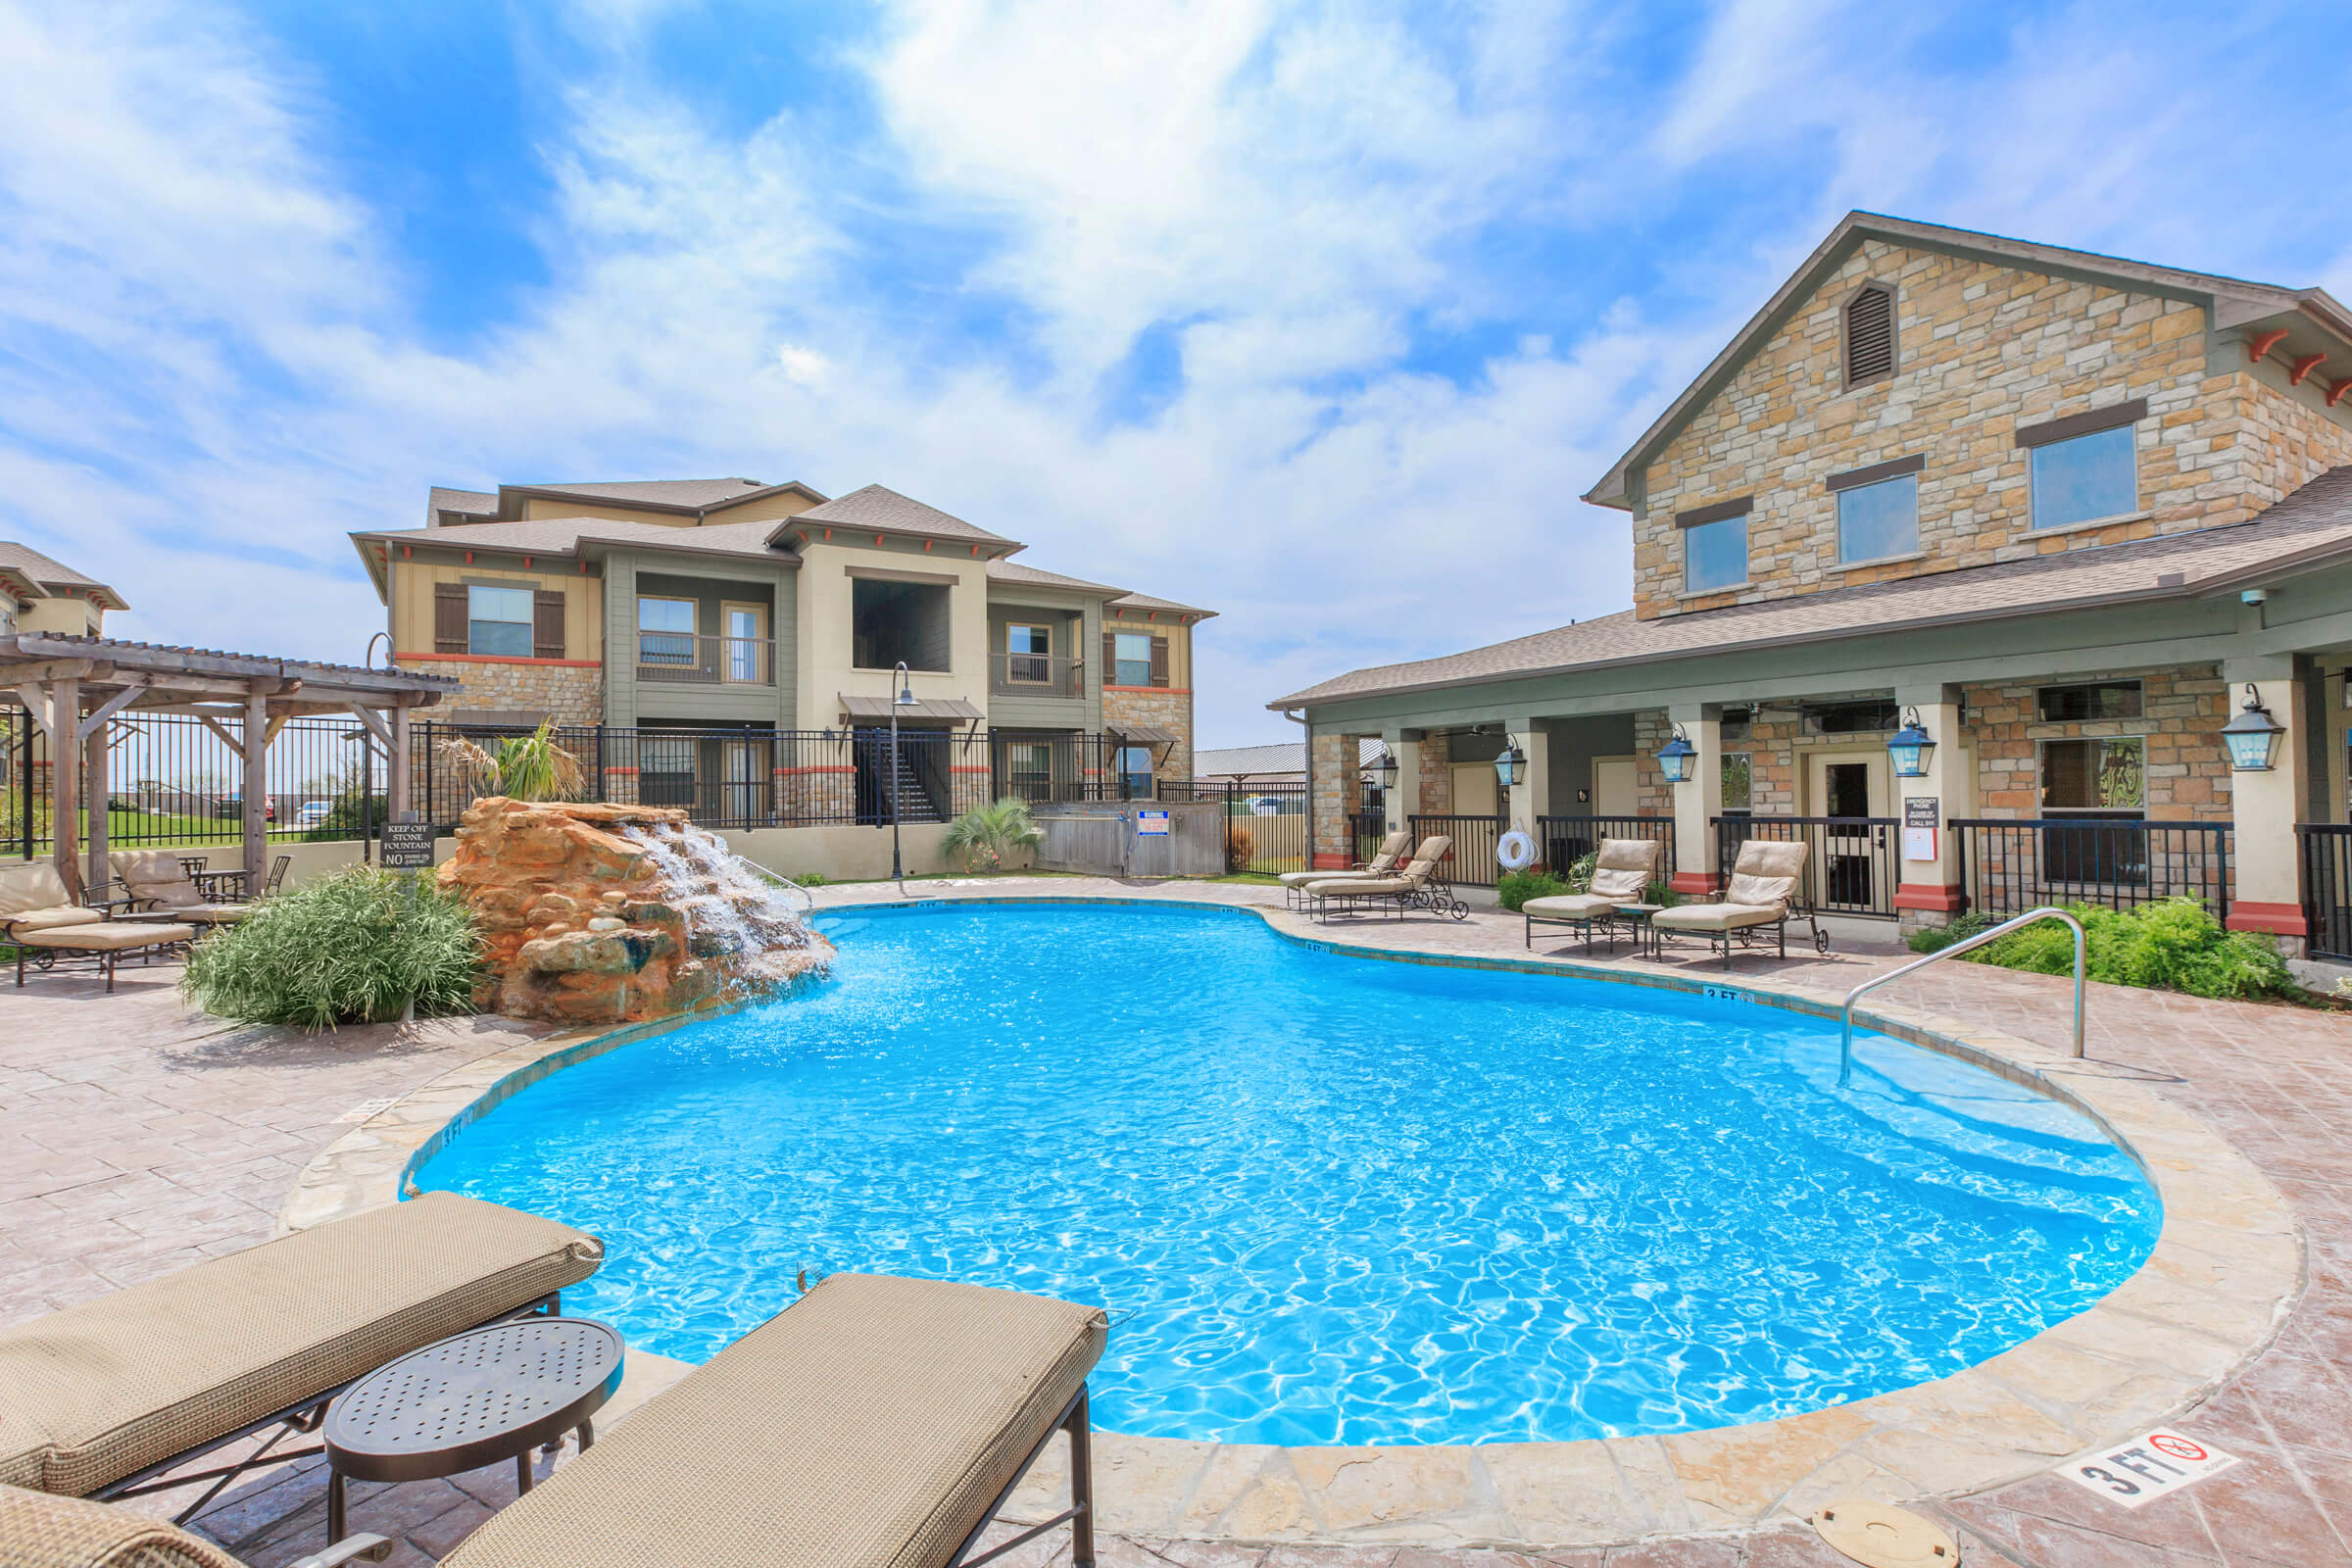 Shiloh crossing apartments in laredo tx - Laredo civic center swimming pool ...